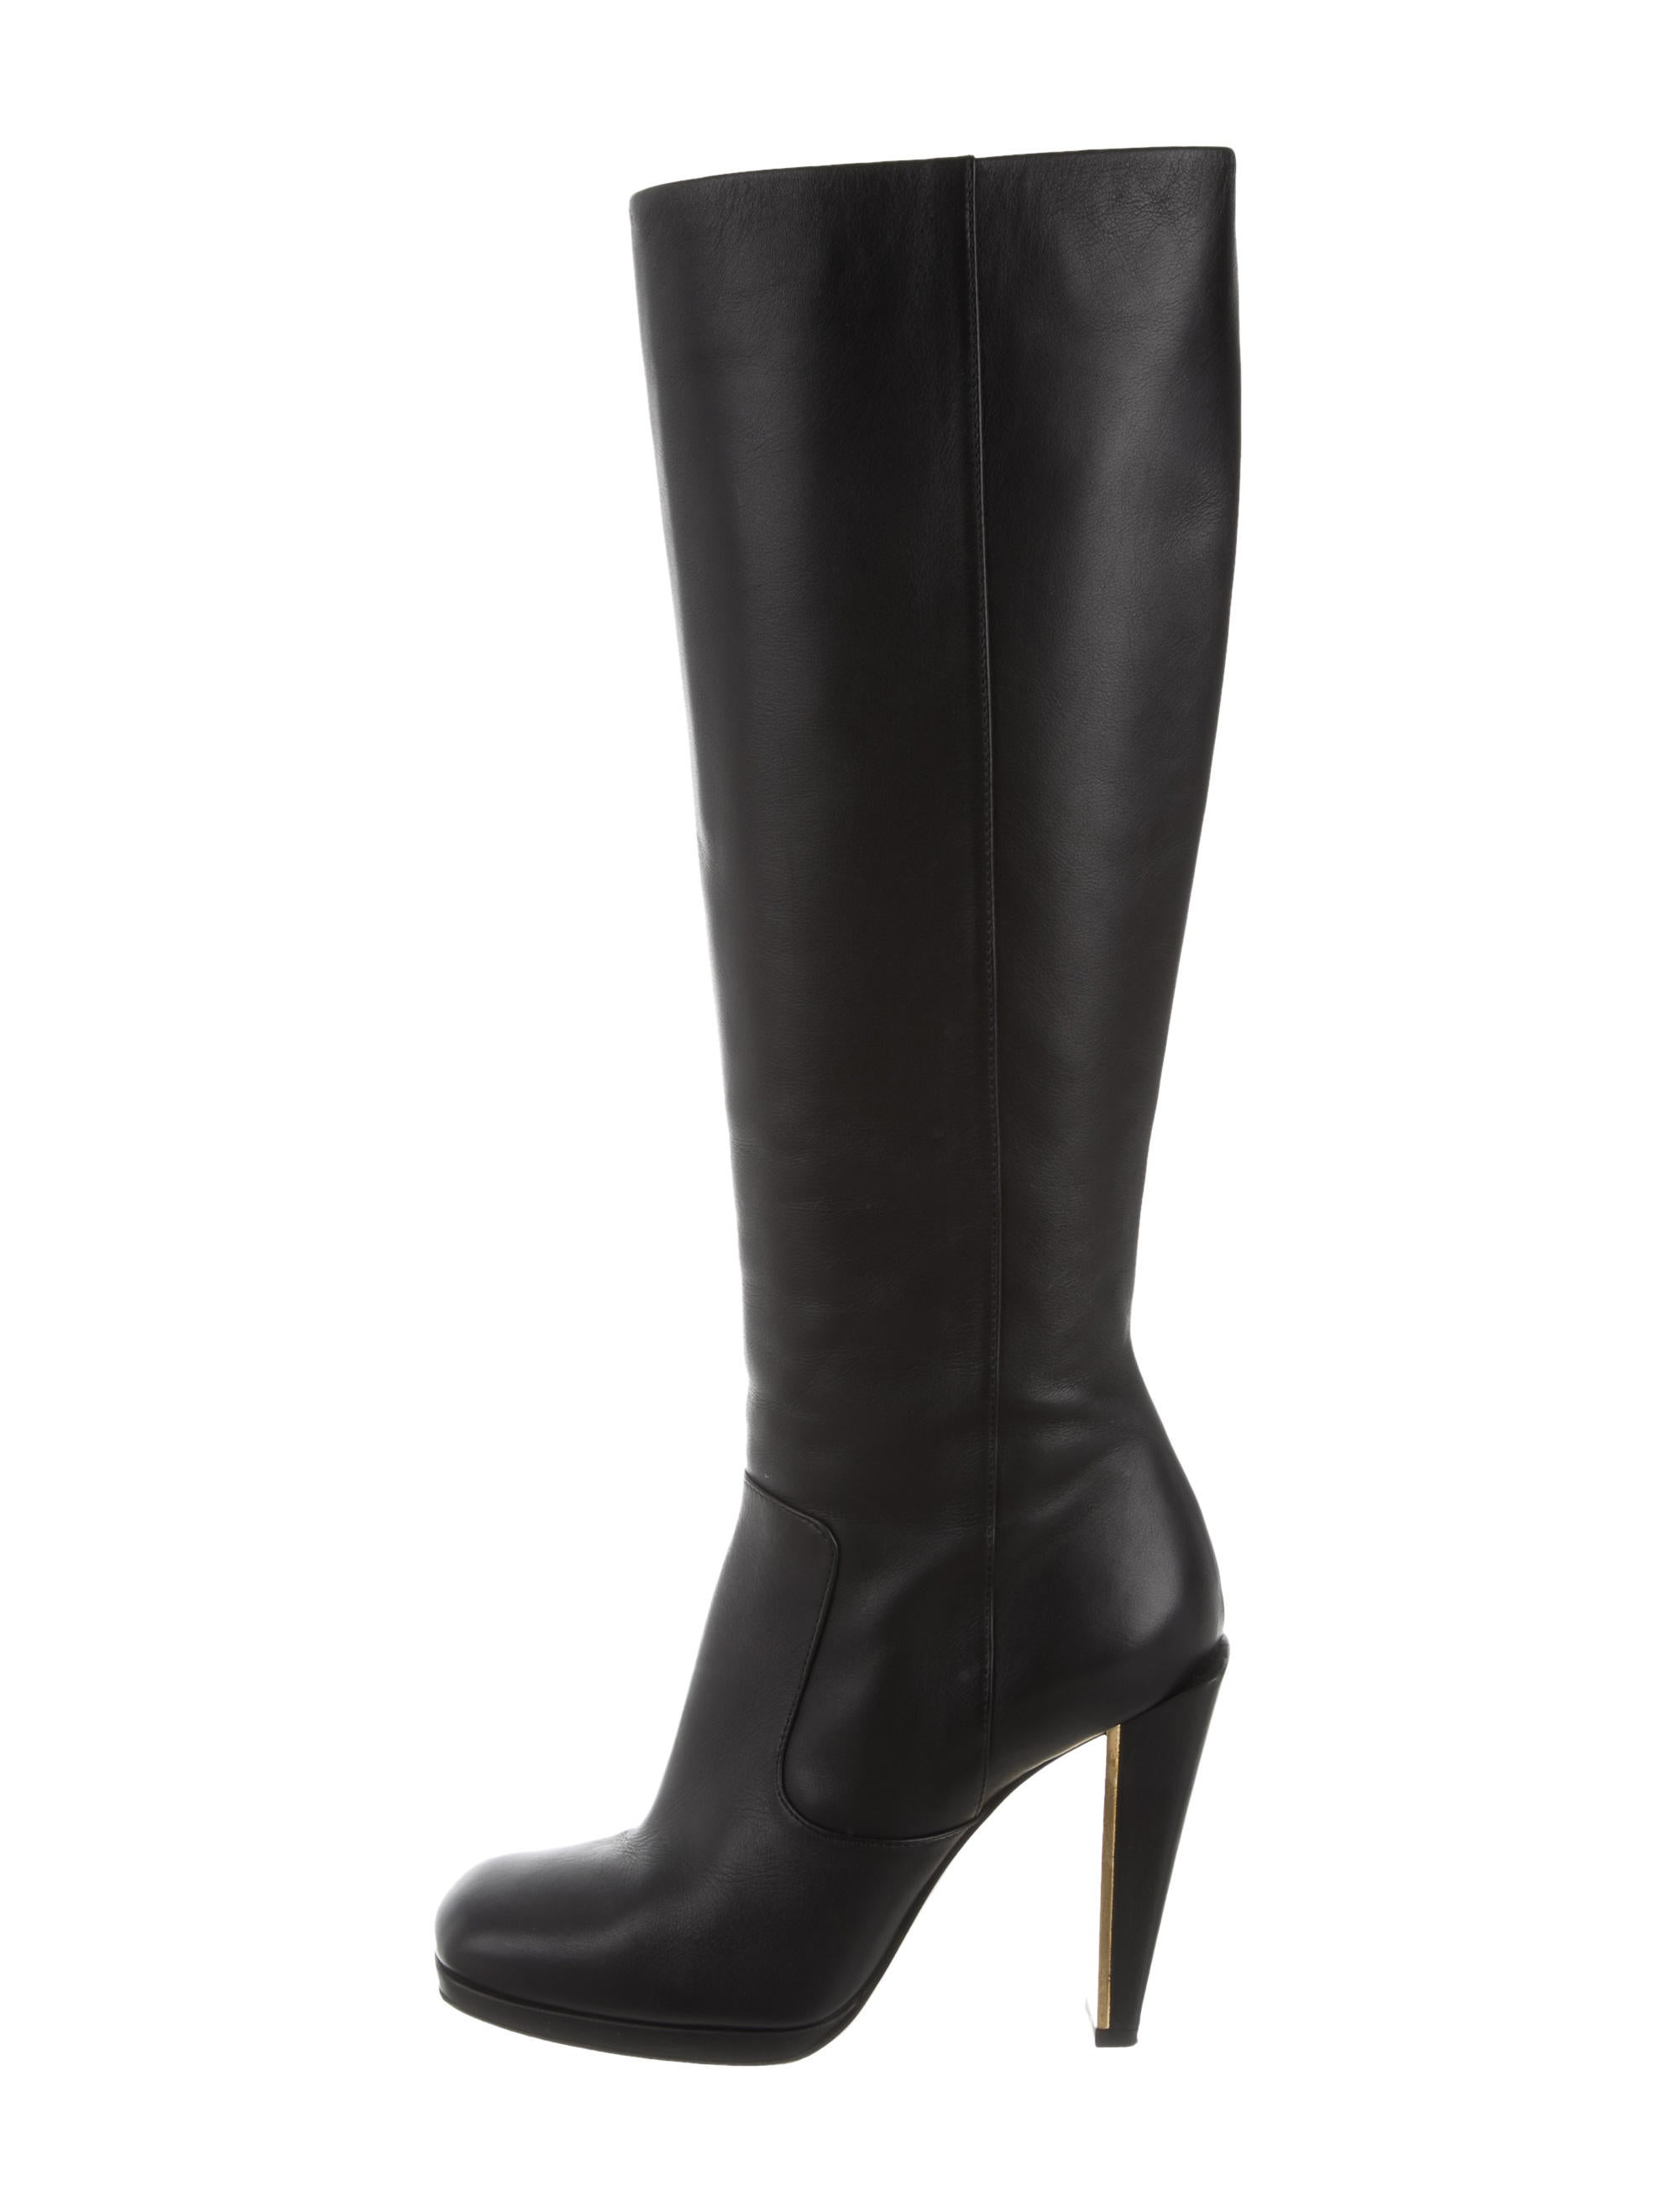 outlet cheap quality free shipping fashionable Fendi Leather Square-Toe Knee-High Boots zwaP15Mt